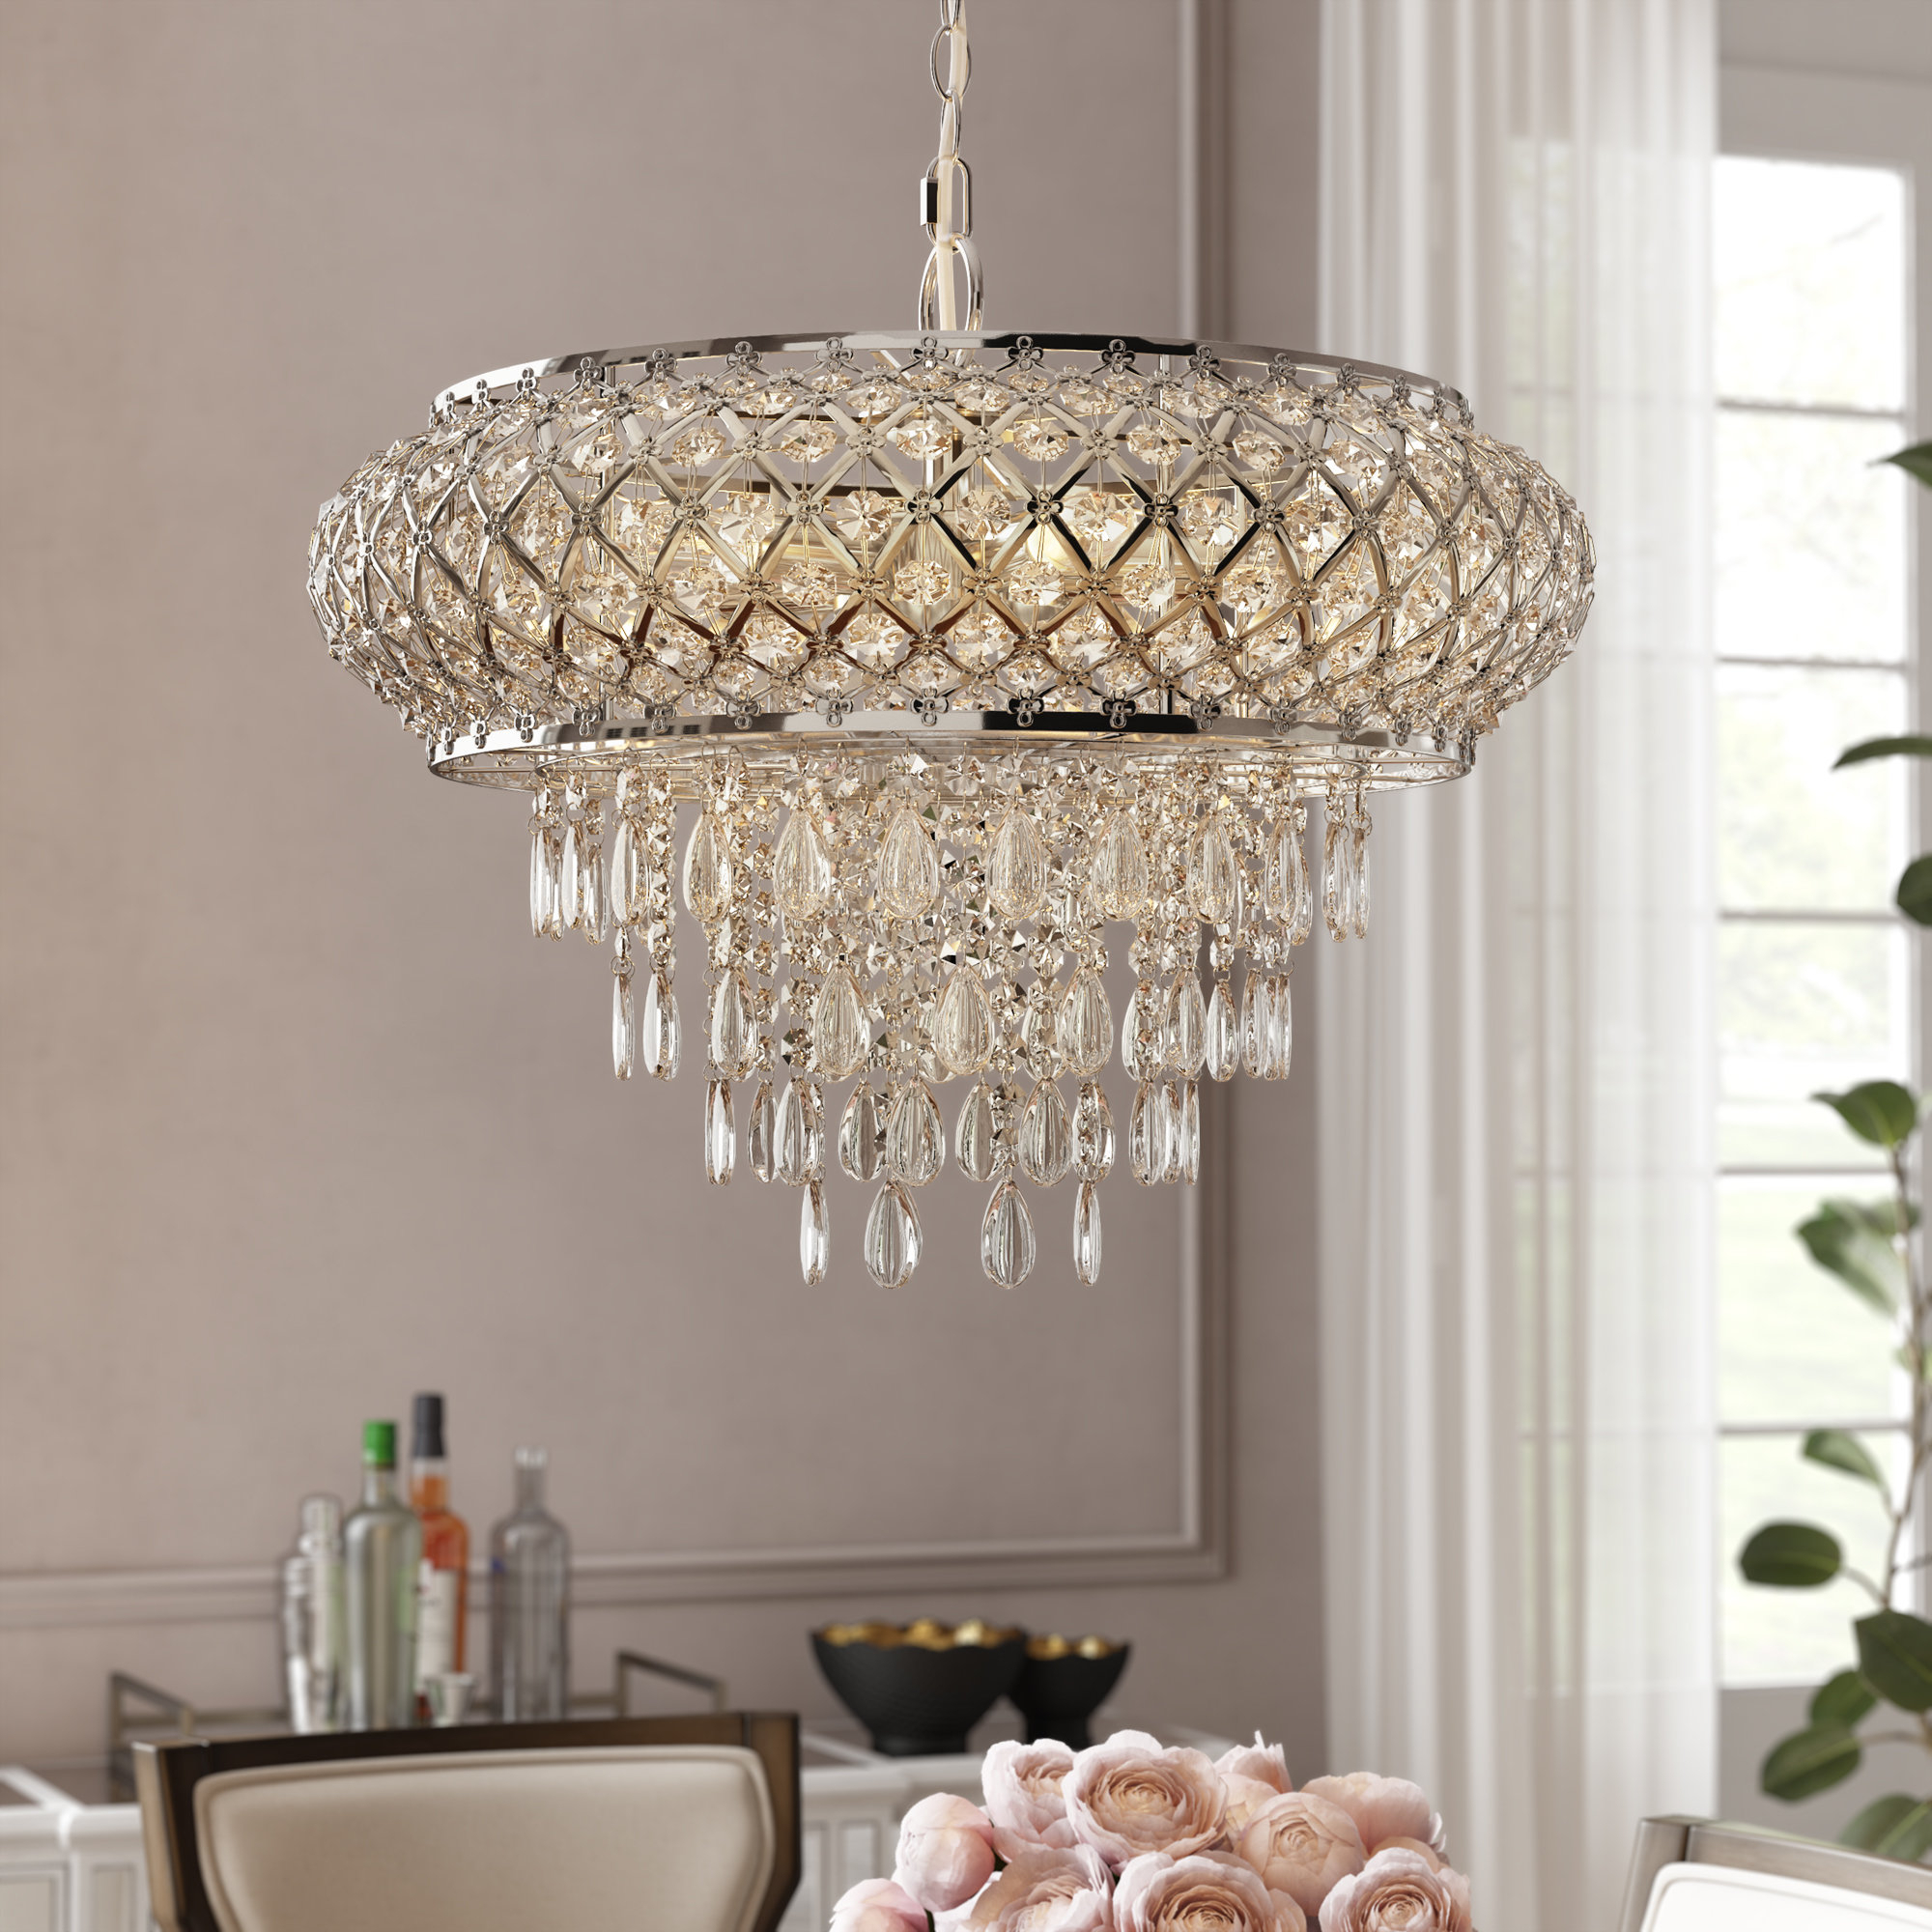 Hoang Tiered 5-Light Crystal Chandelier intended for Aldgate 4-Light Crystal Chandeliers (Image 16 of 30)